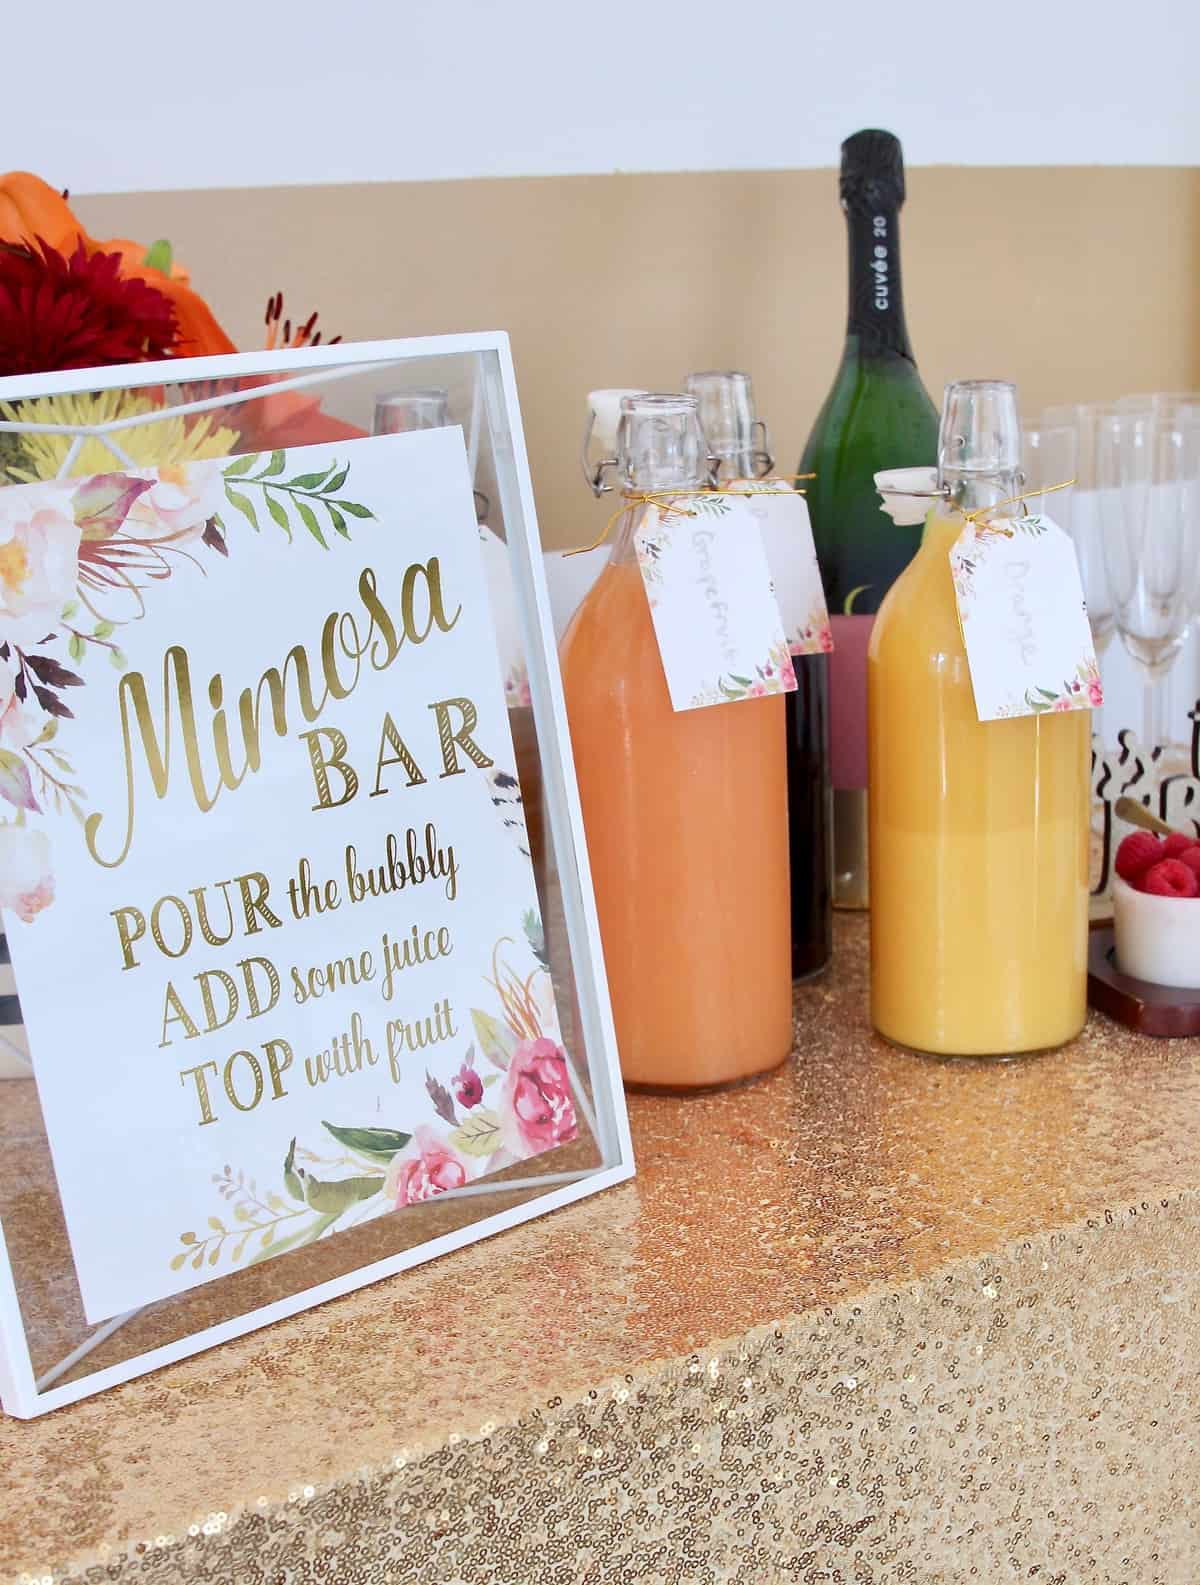 Mimosa bar sign and juices on bar with gold sparkly tablecloth